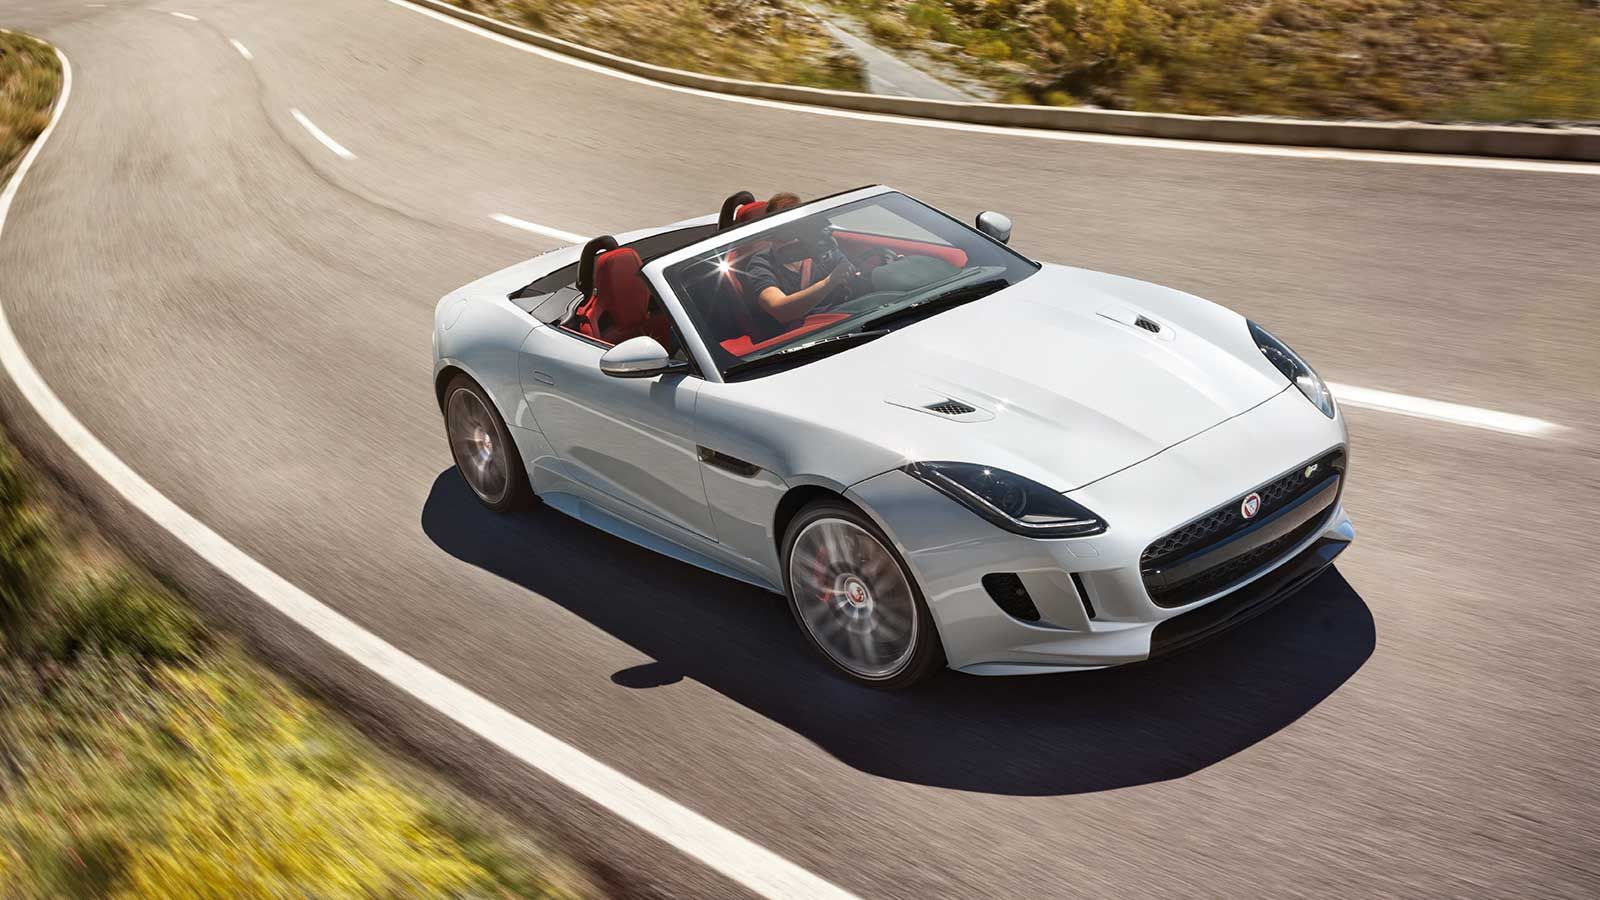 A White Jaguar Convertible Driving On A Road.